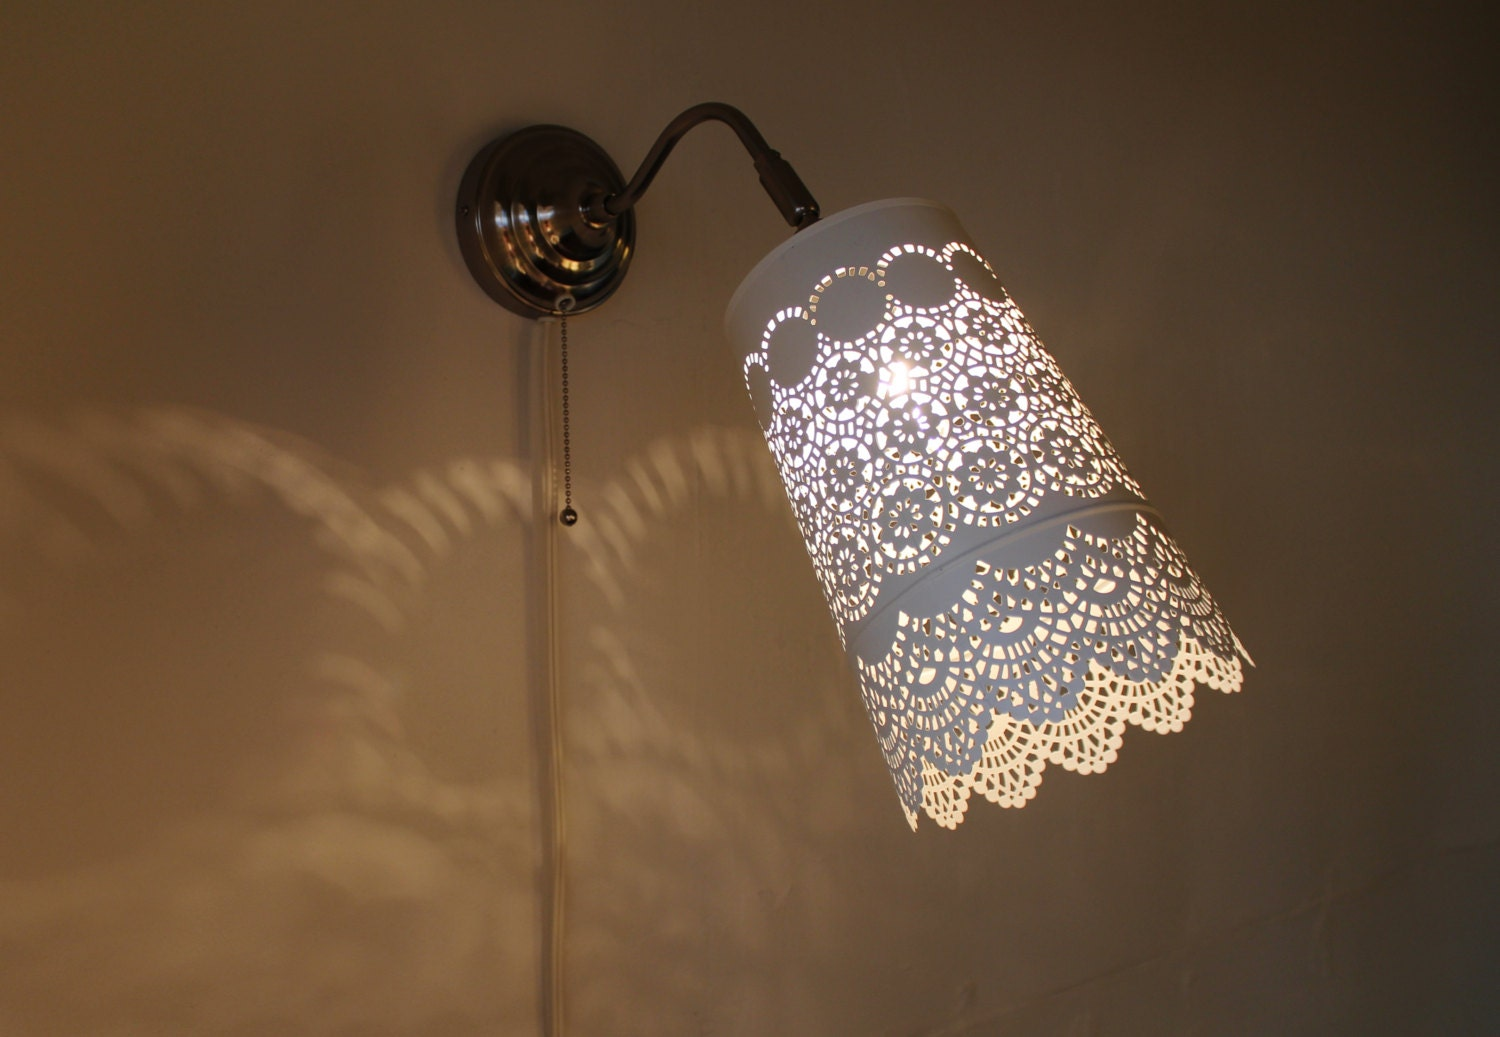 hk hanging lamp with zoom an stainless steel en listing sconce kdpt lace il wall fullxfull